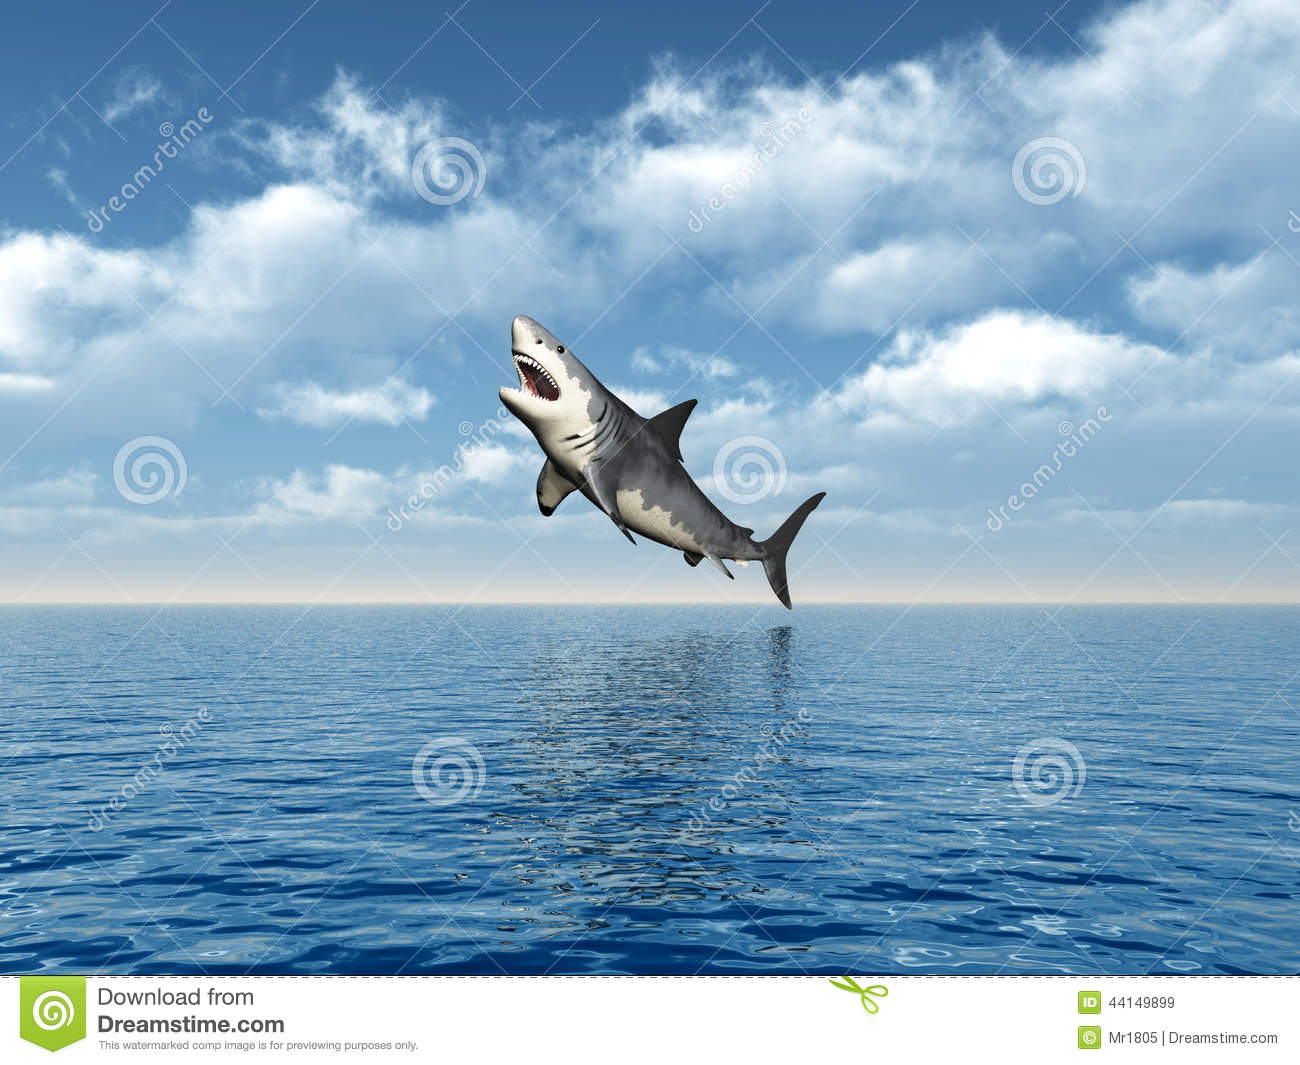 fish jumping out of water png